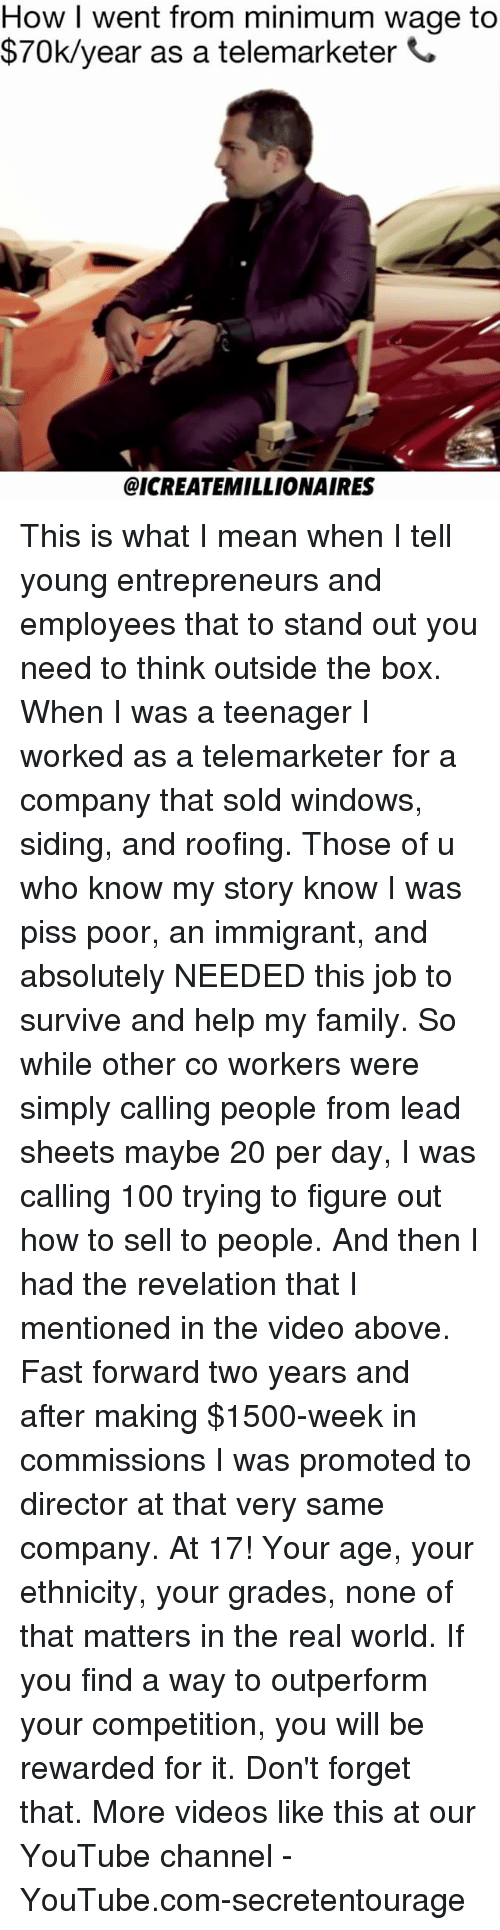 How I Went From Minimum Wage To 70kyear As A Telemarketer